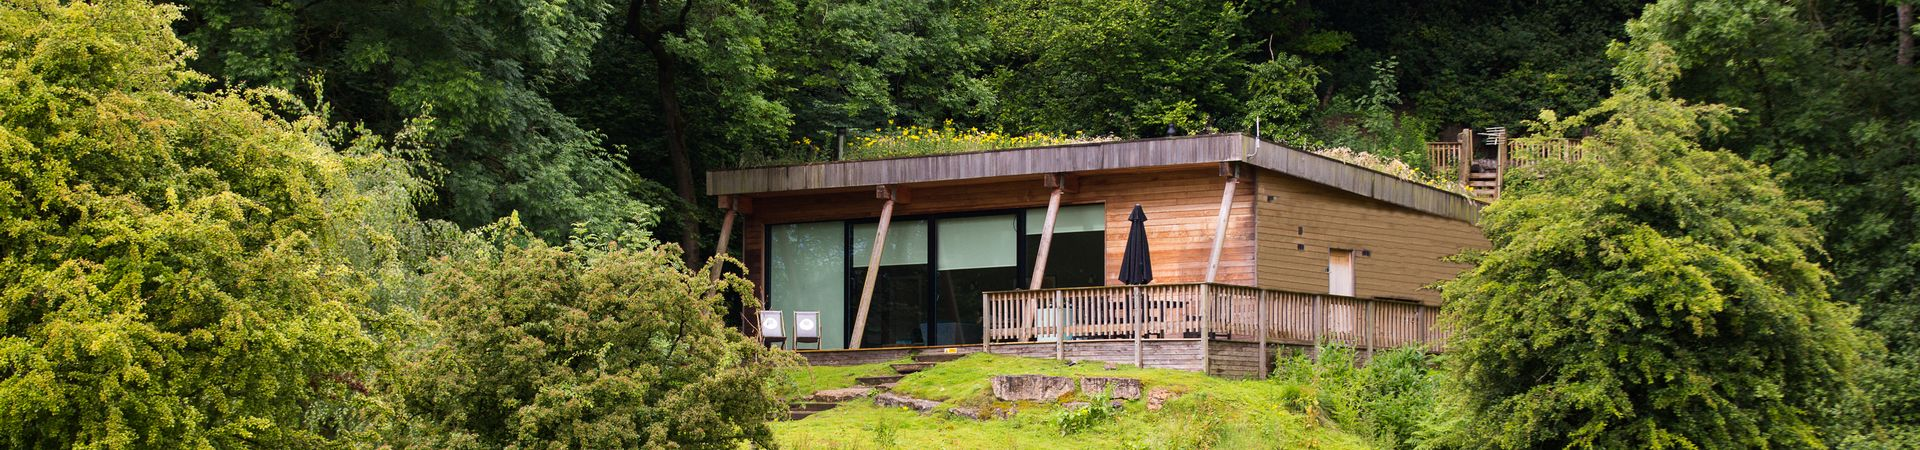 yorkshire dales eco lodge